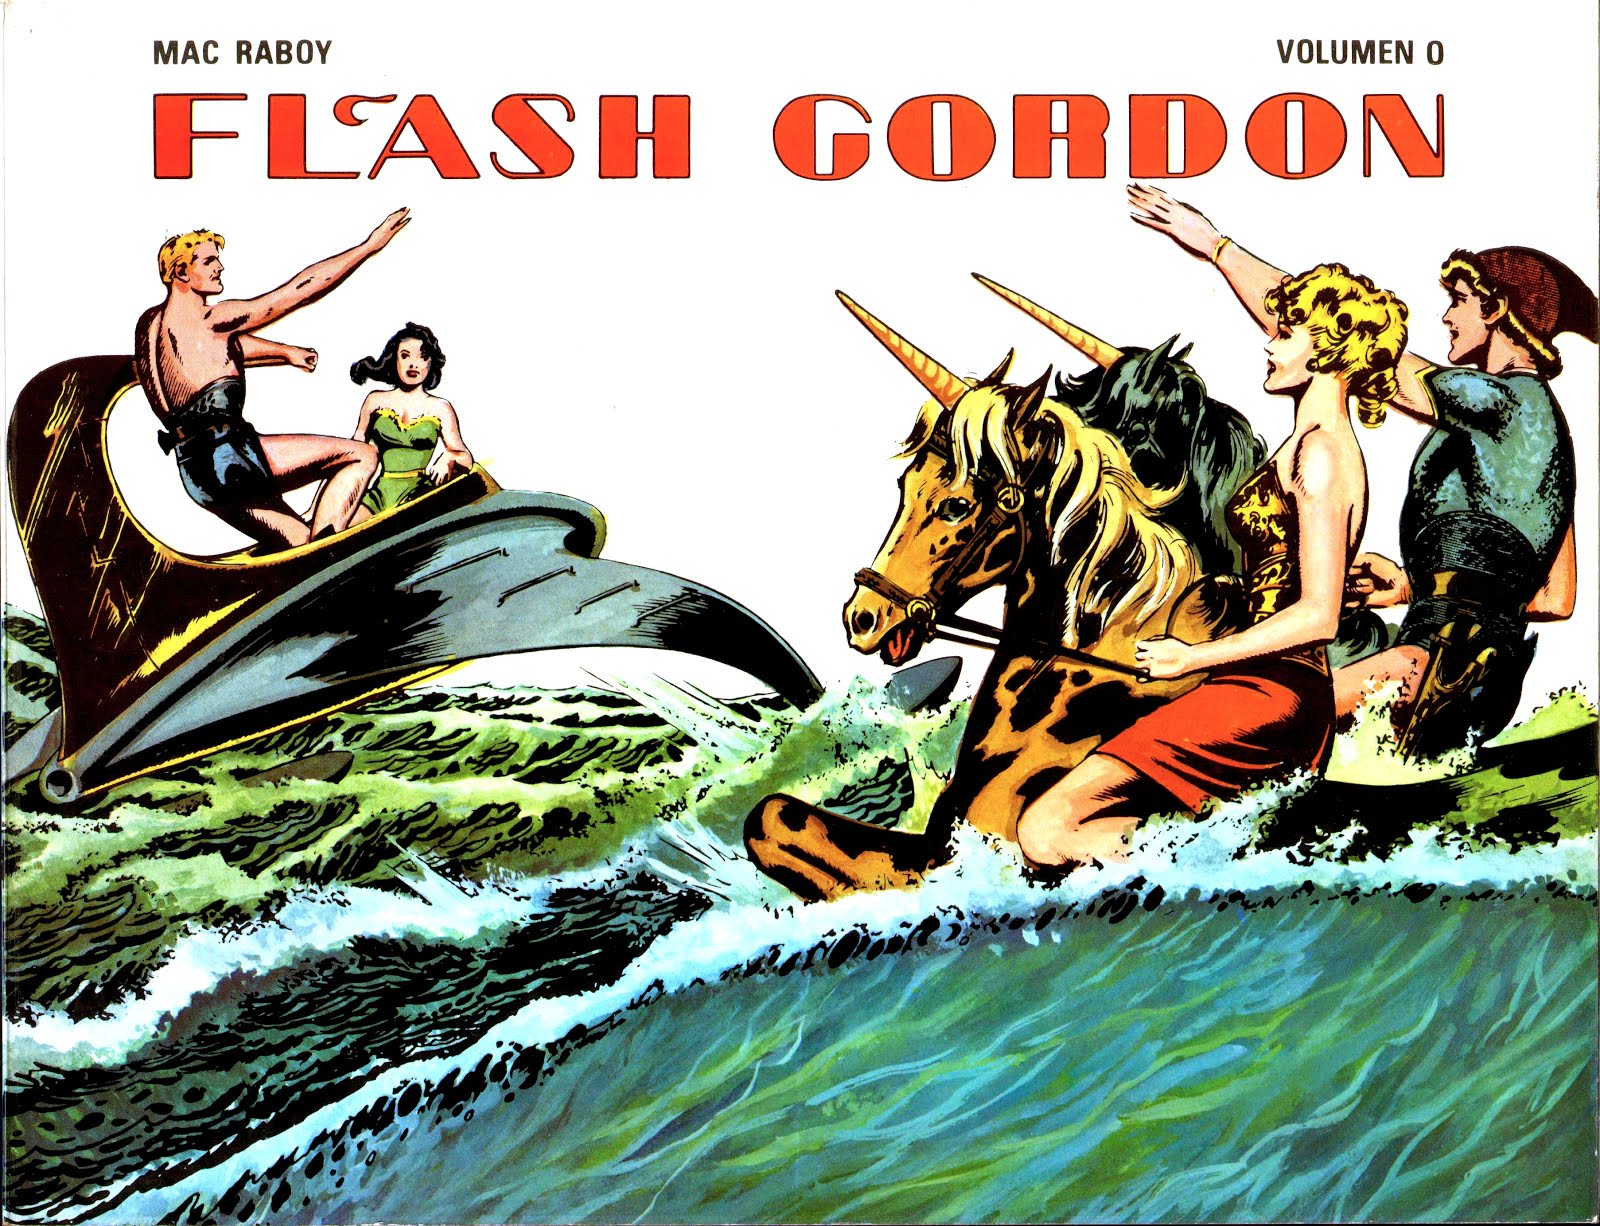 Flash Gordon. Mac Raboy. Ediciones B.O. 00 - 07 - Arreglos de JMG